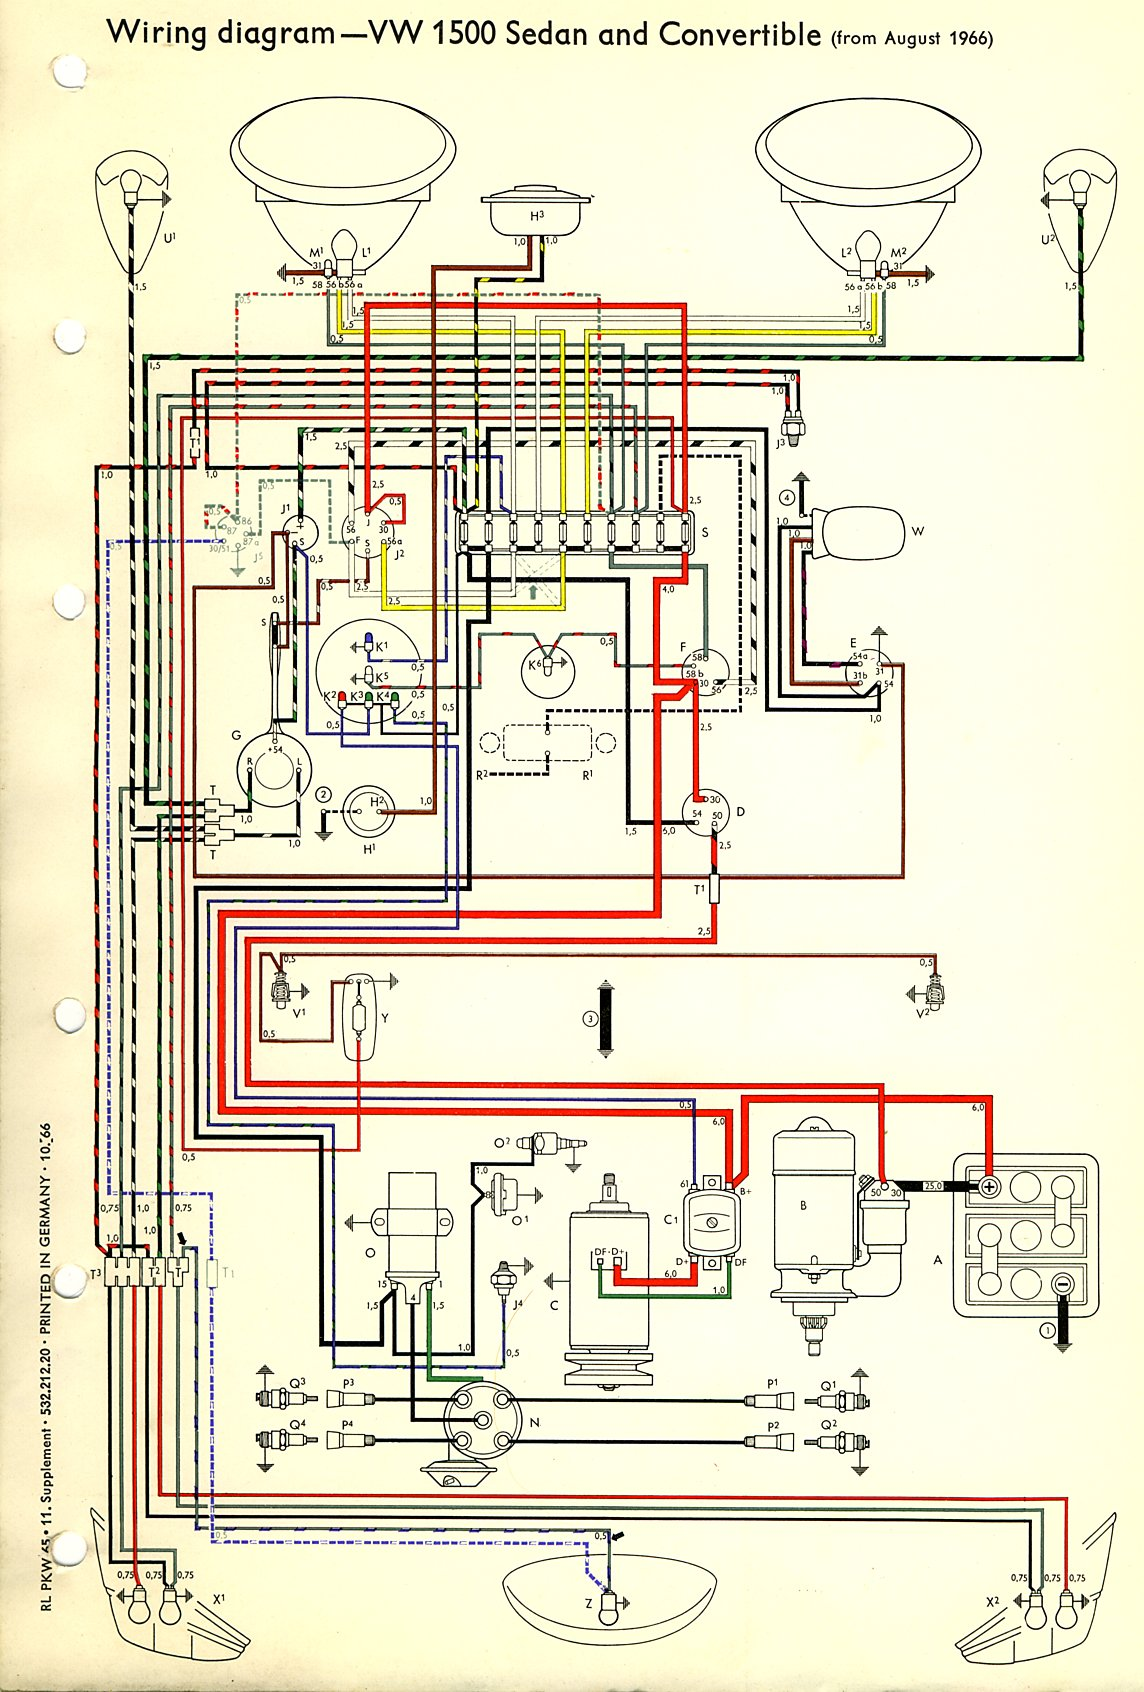 1967 vw engine diagram | wiring diagram 72 beetle engine diagram 1968 vw beetle engine diagram #6